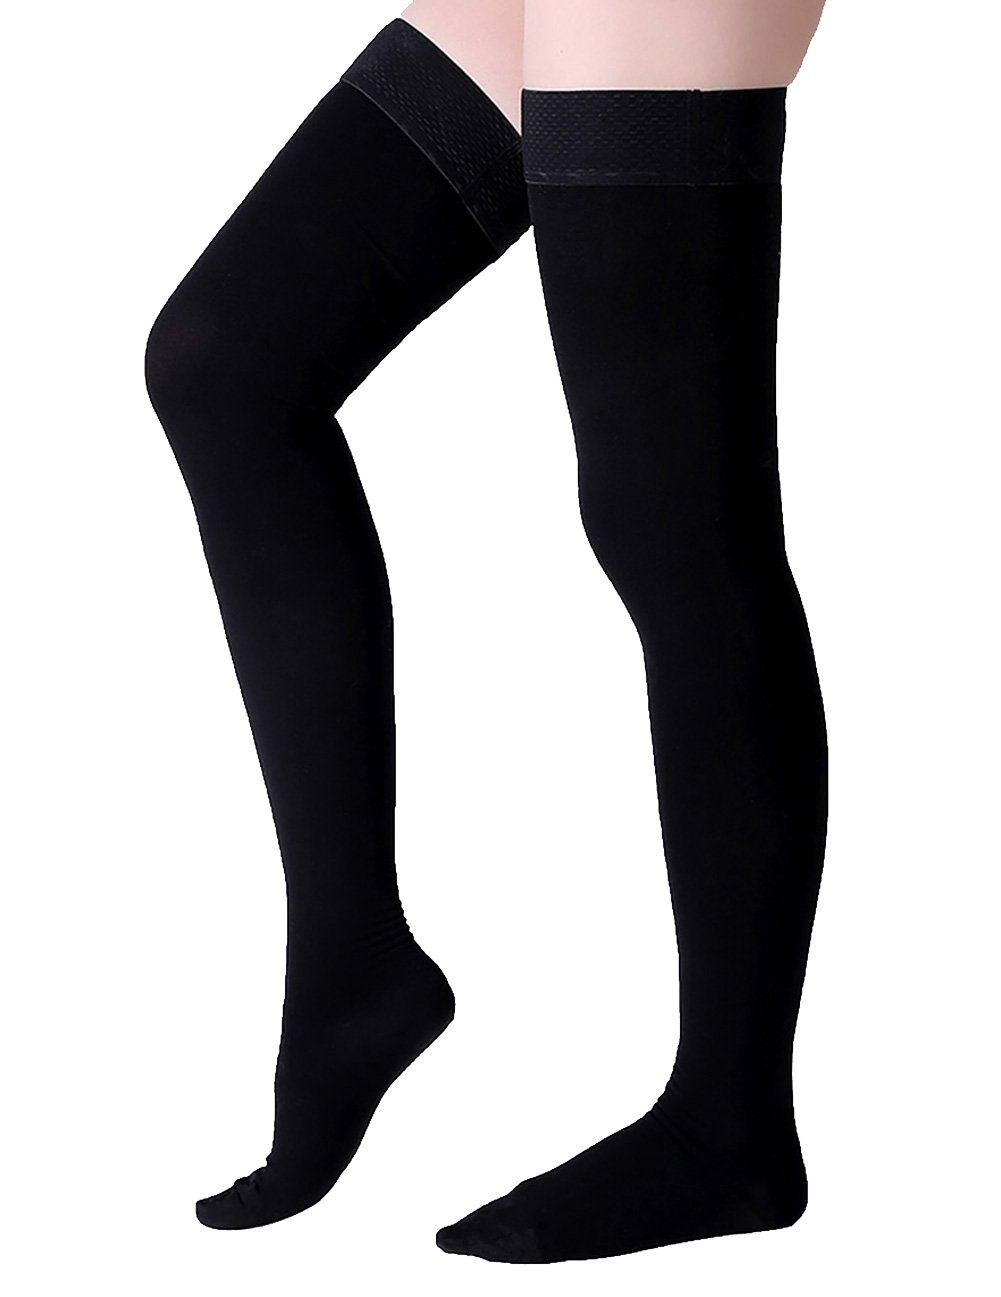 Thigh High Compression Stockings, Closed Toe, Firm Support 20-30 mmHg Gradient Compression Socks with Silicone Band, Opaque, Best for Treatment Swelling, Varicose Veins, Edema, Pregnancy, Black S by MGANG (Image #2)